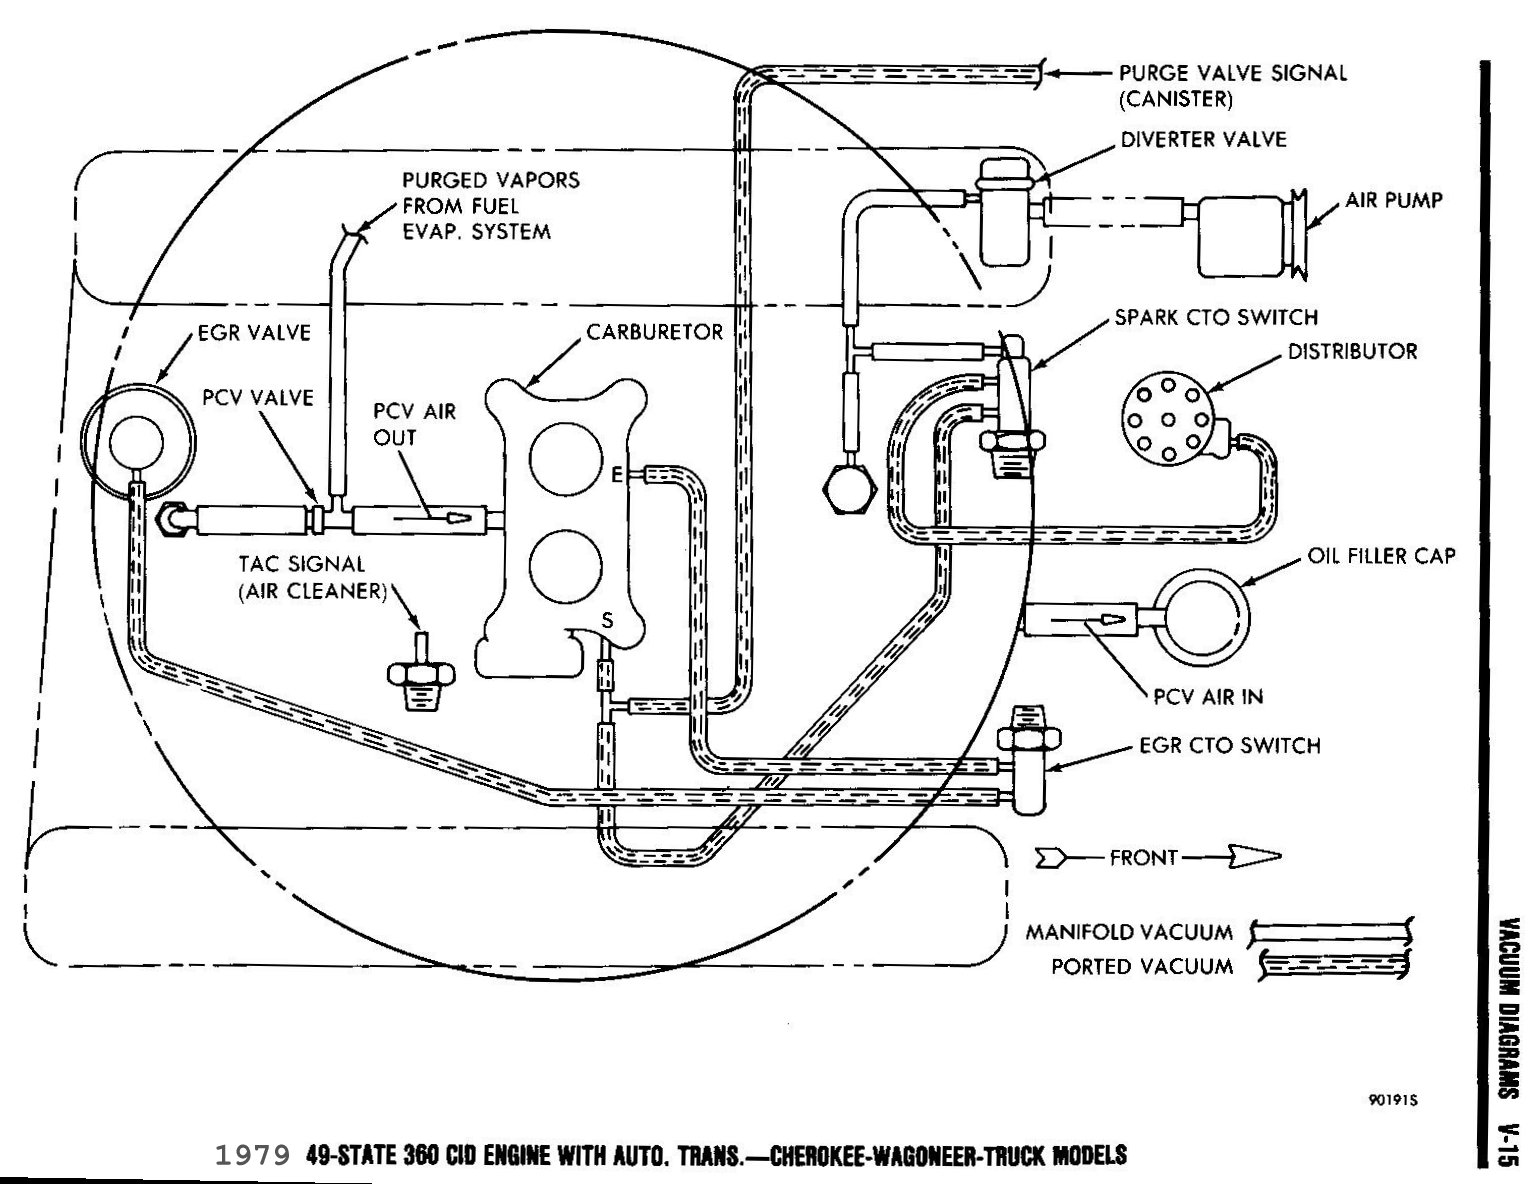 79 FSJ 360_Vacuum tom 'oljeep' collins fsj vacuum layout page 1978 Corvette Wiring Diagram at readyjetset.co